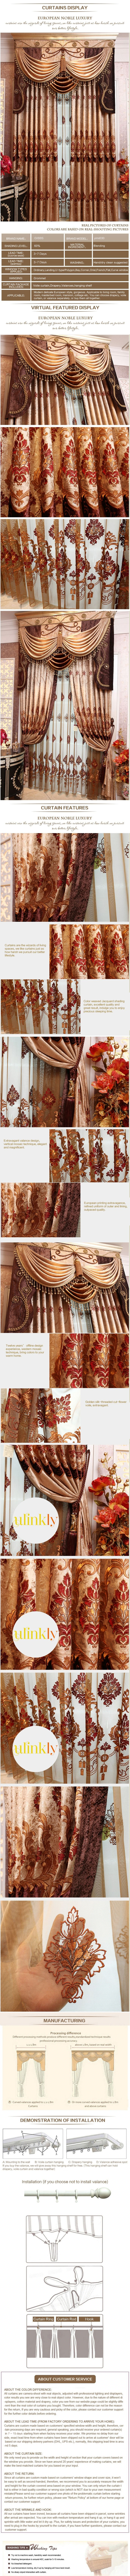 63 best CURTAINS images on Pinterest | Home ideas, Decorating ideas ...